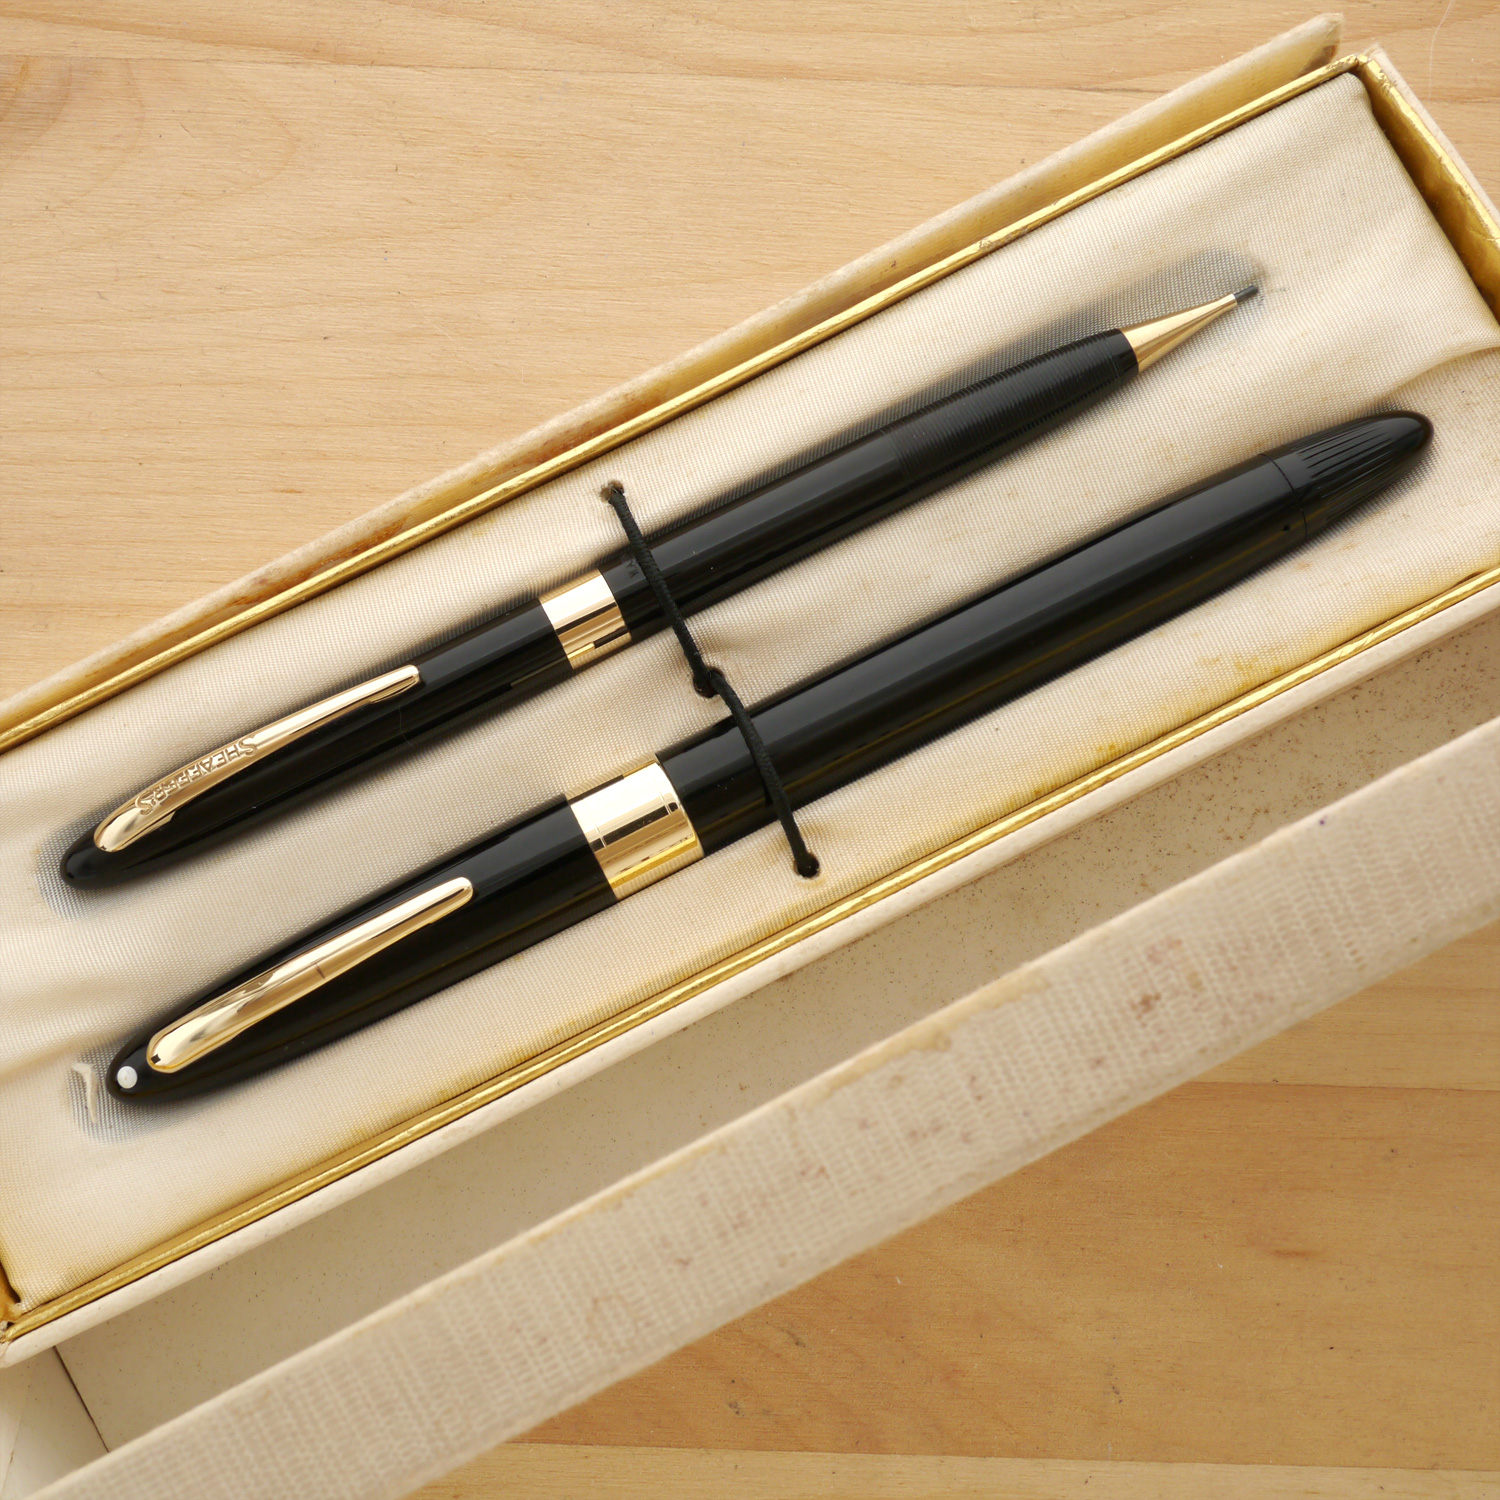 Sheaffer Snorkel Admiral Fountain Pen and Pencil Set, XXF, in box